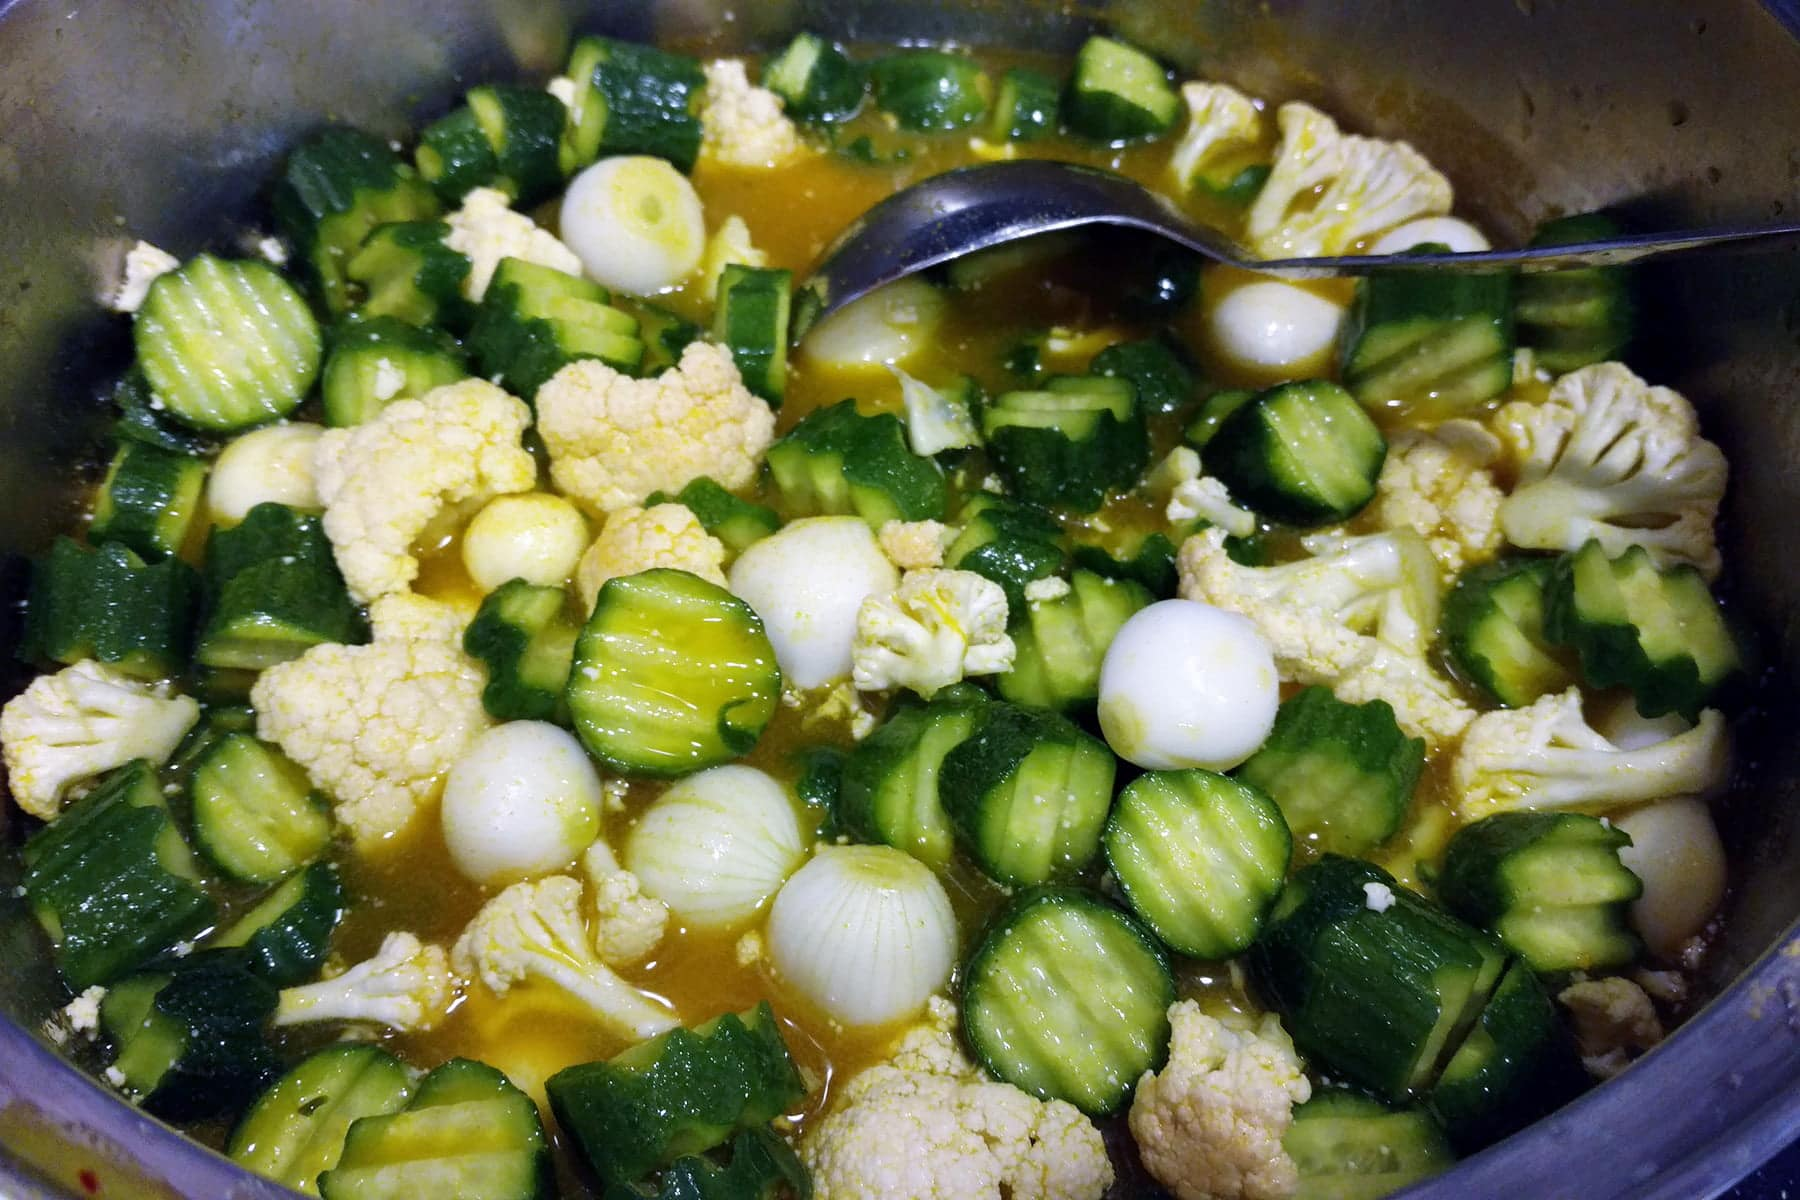 Wavy sliced cucumber, pieces of cauliflower, and pearl onions in a large pot, along with a yellow sauce.